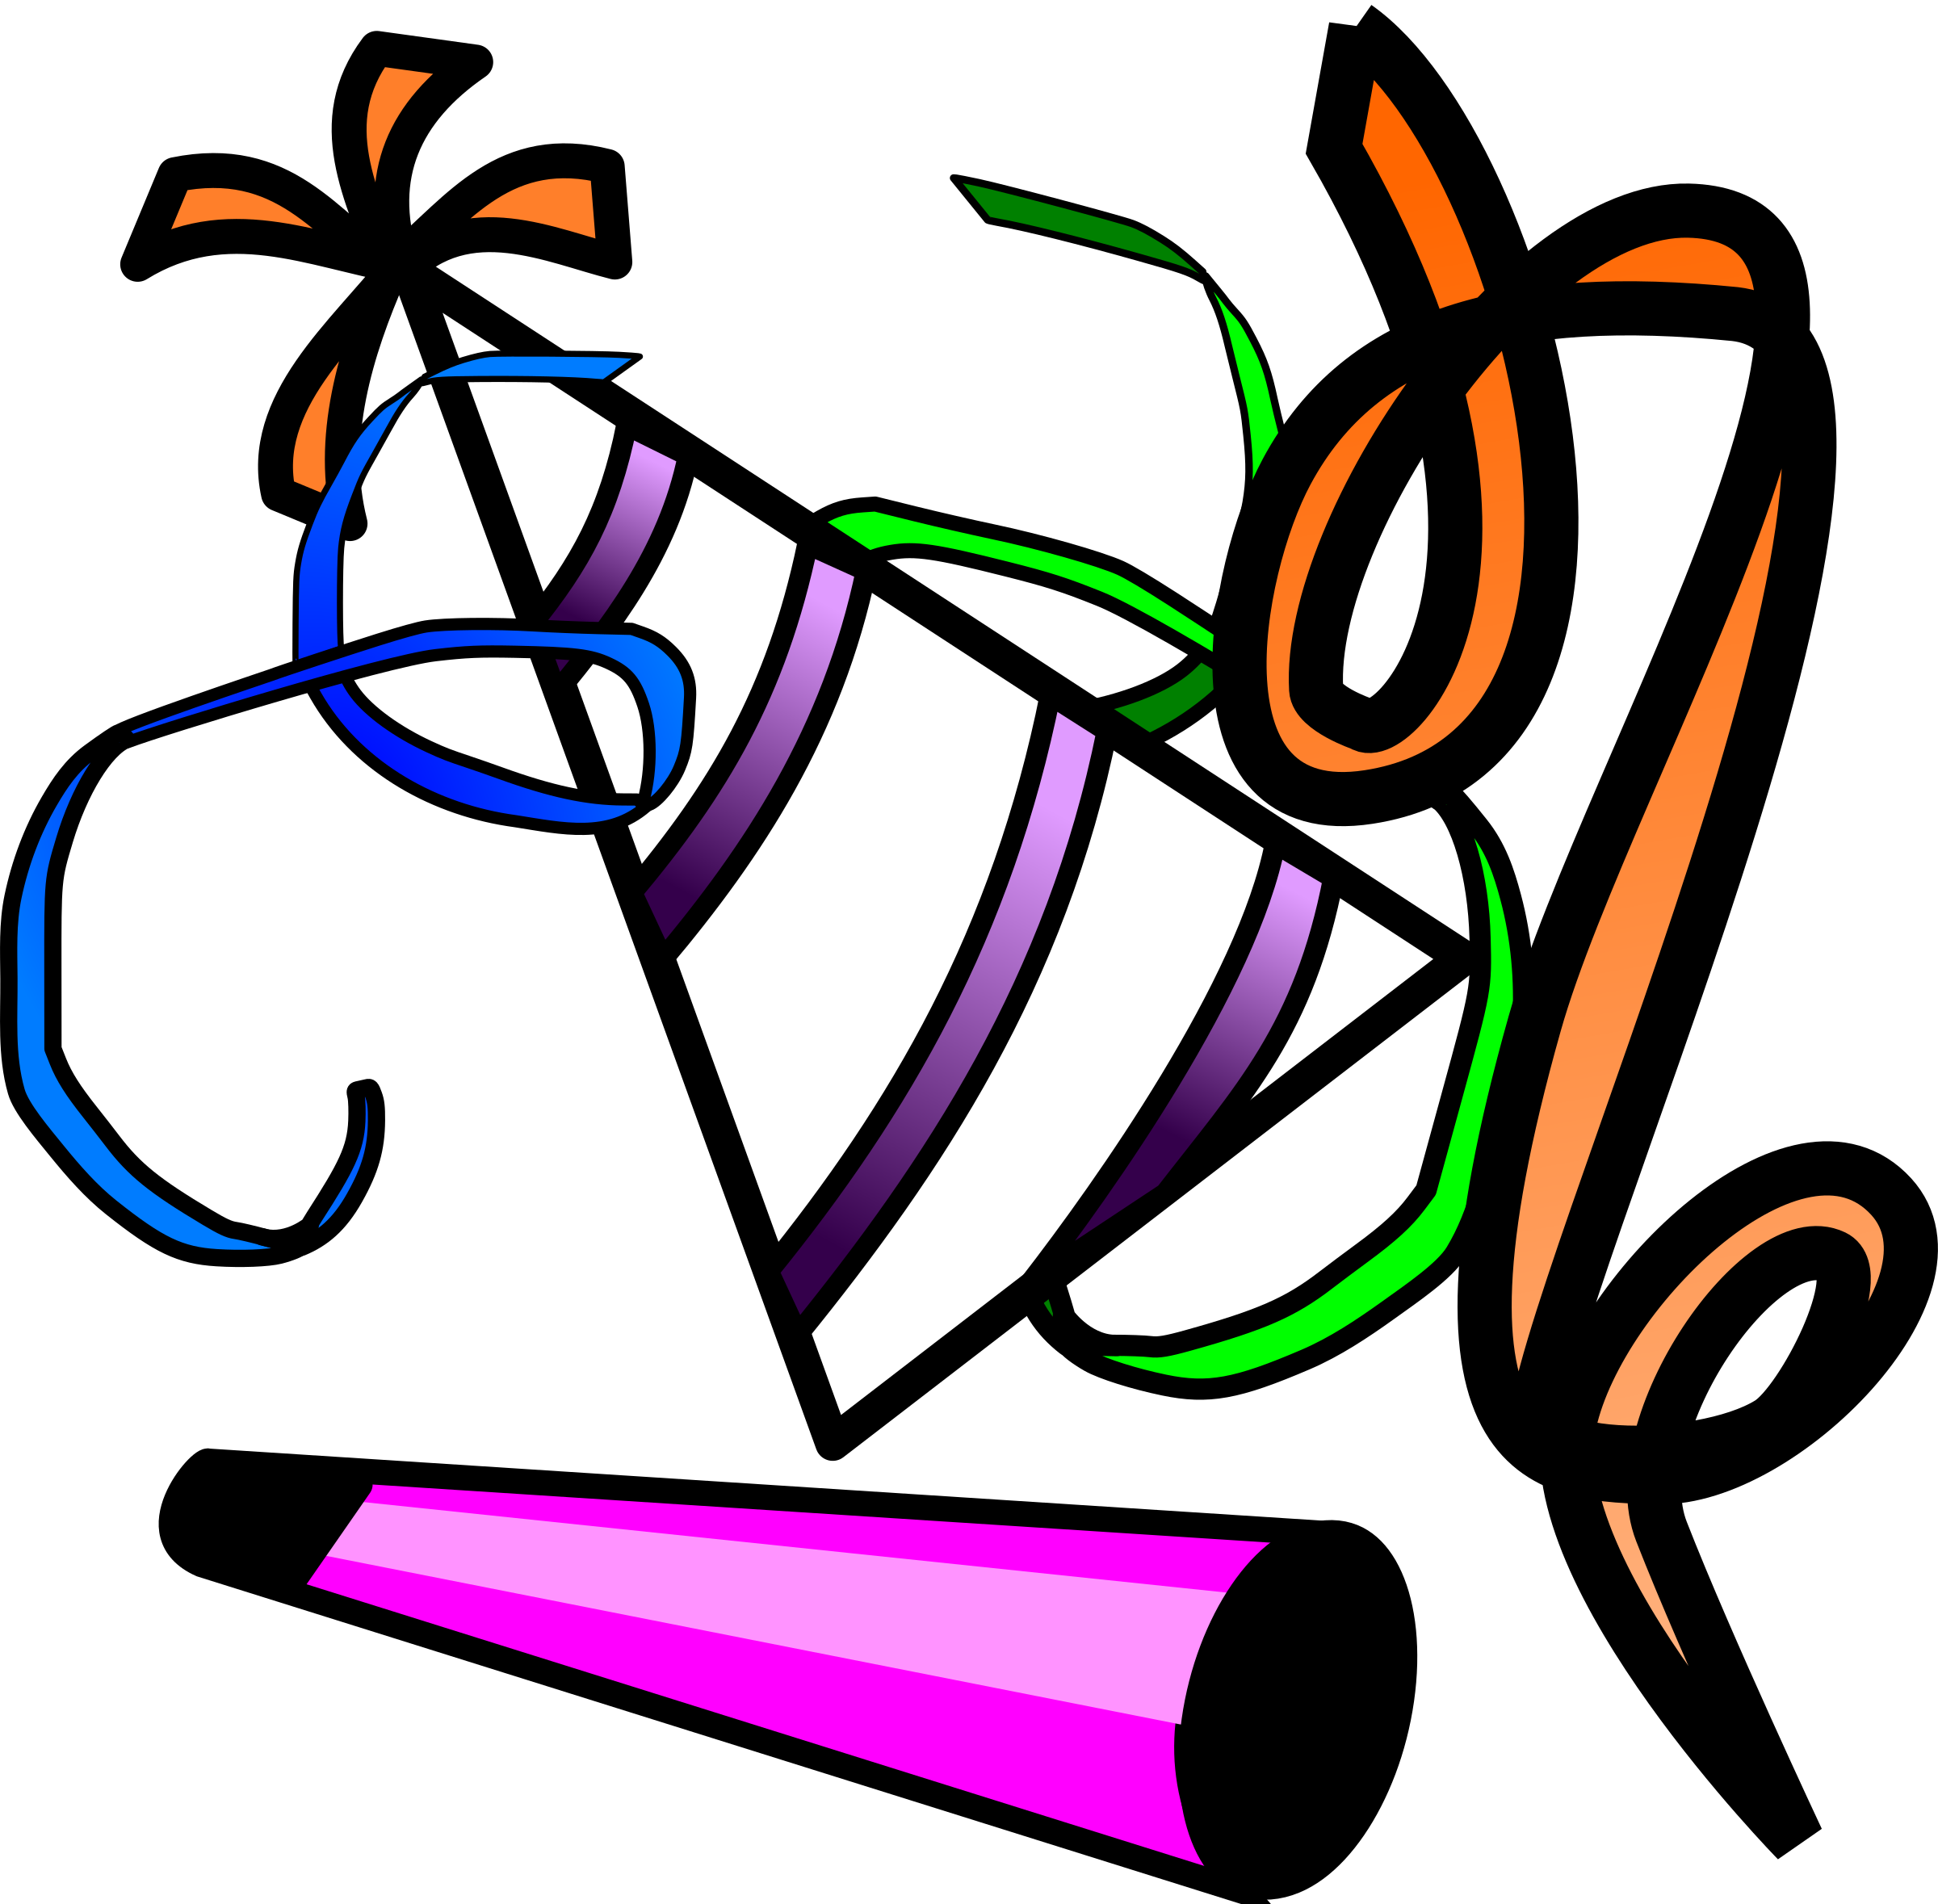 Celebrate clipart classroom. Feature series healthy celebrations